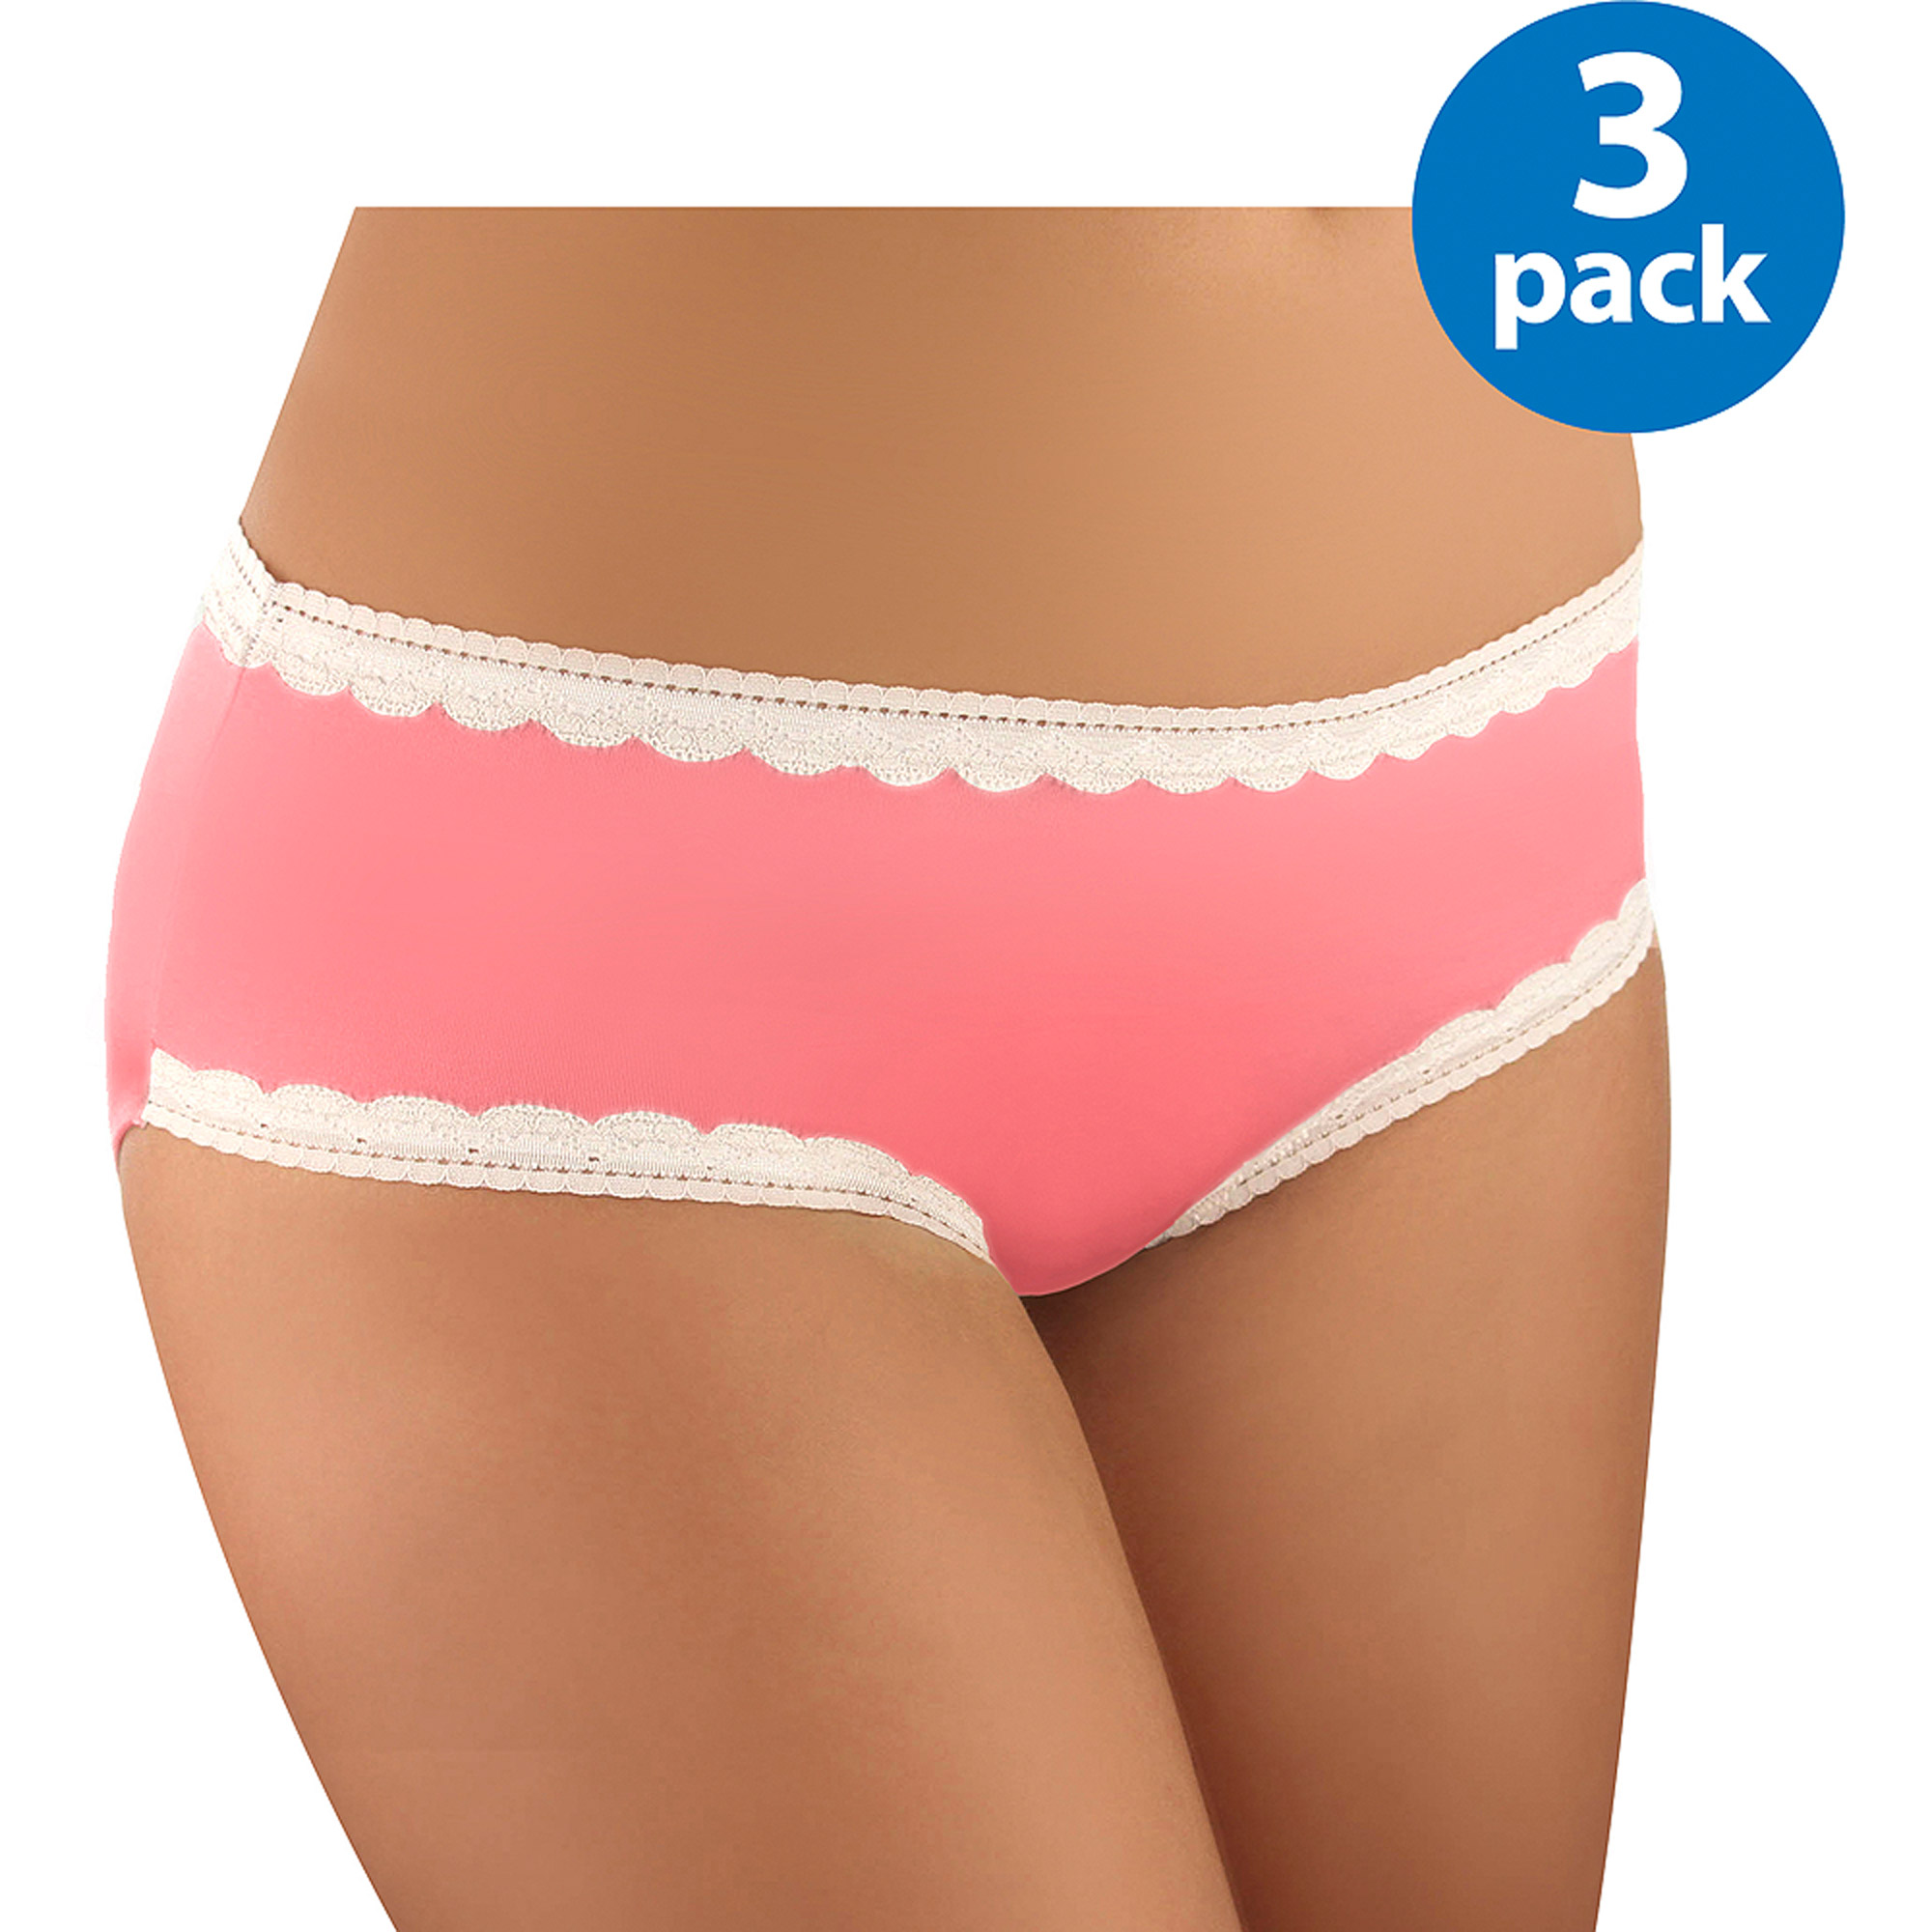 Women's Microfiber w/Lace Hipster, 3-Pack